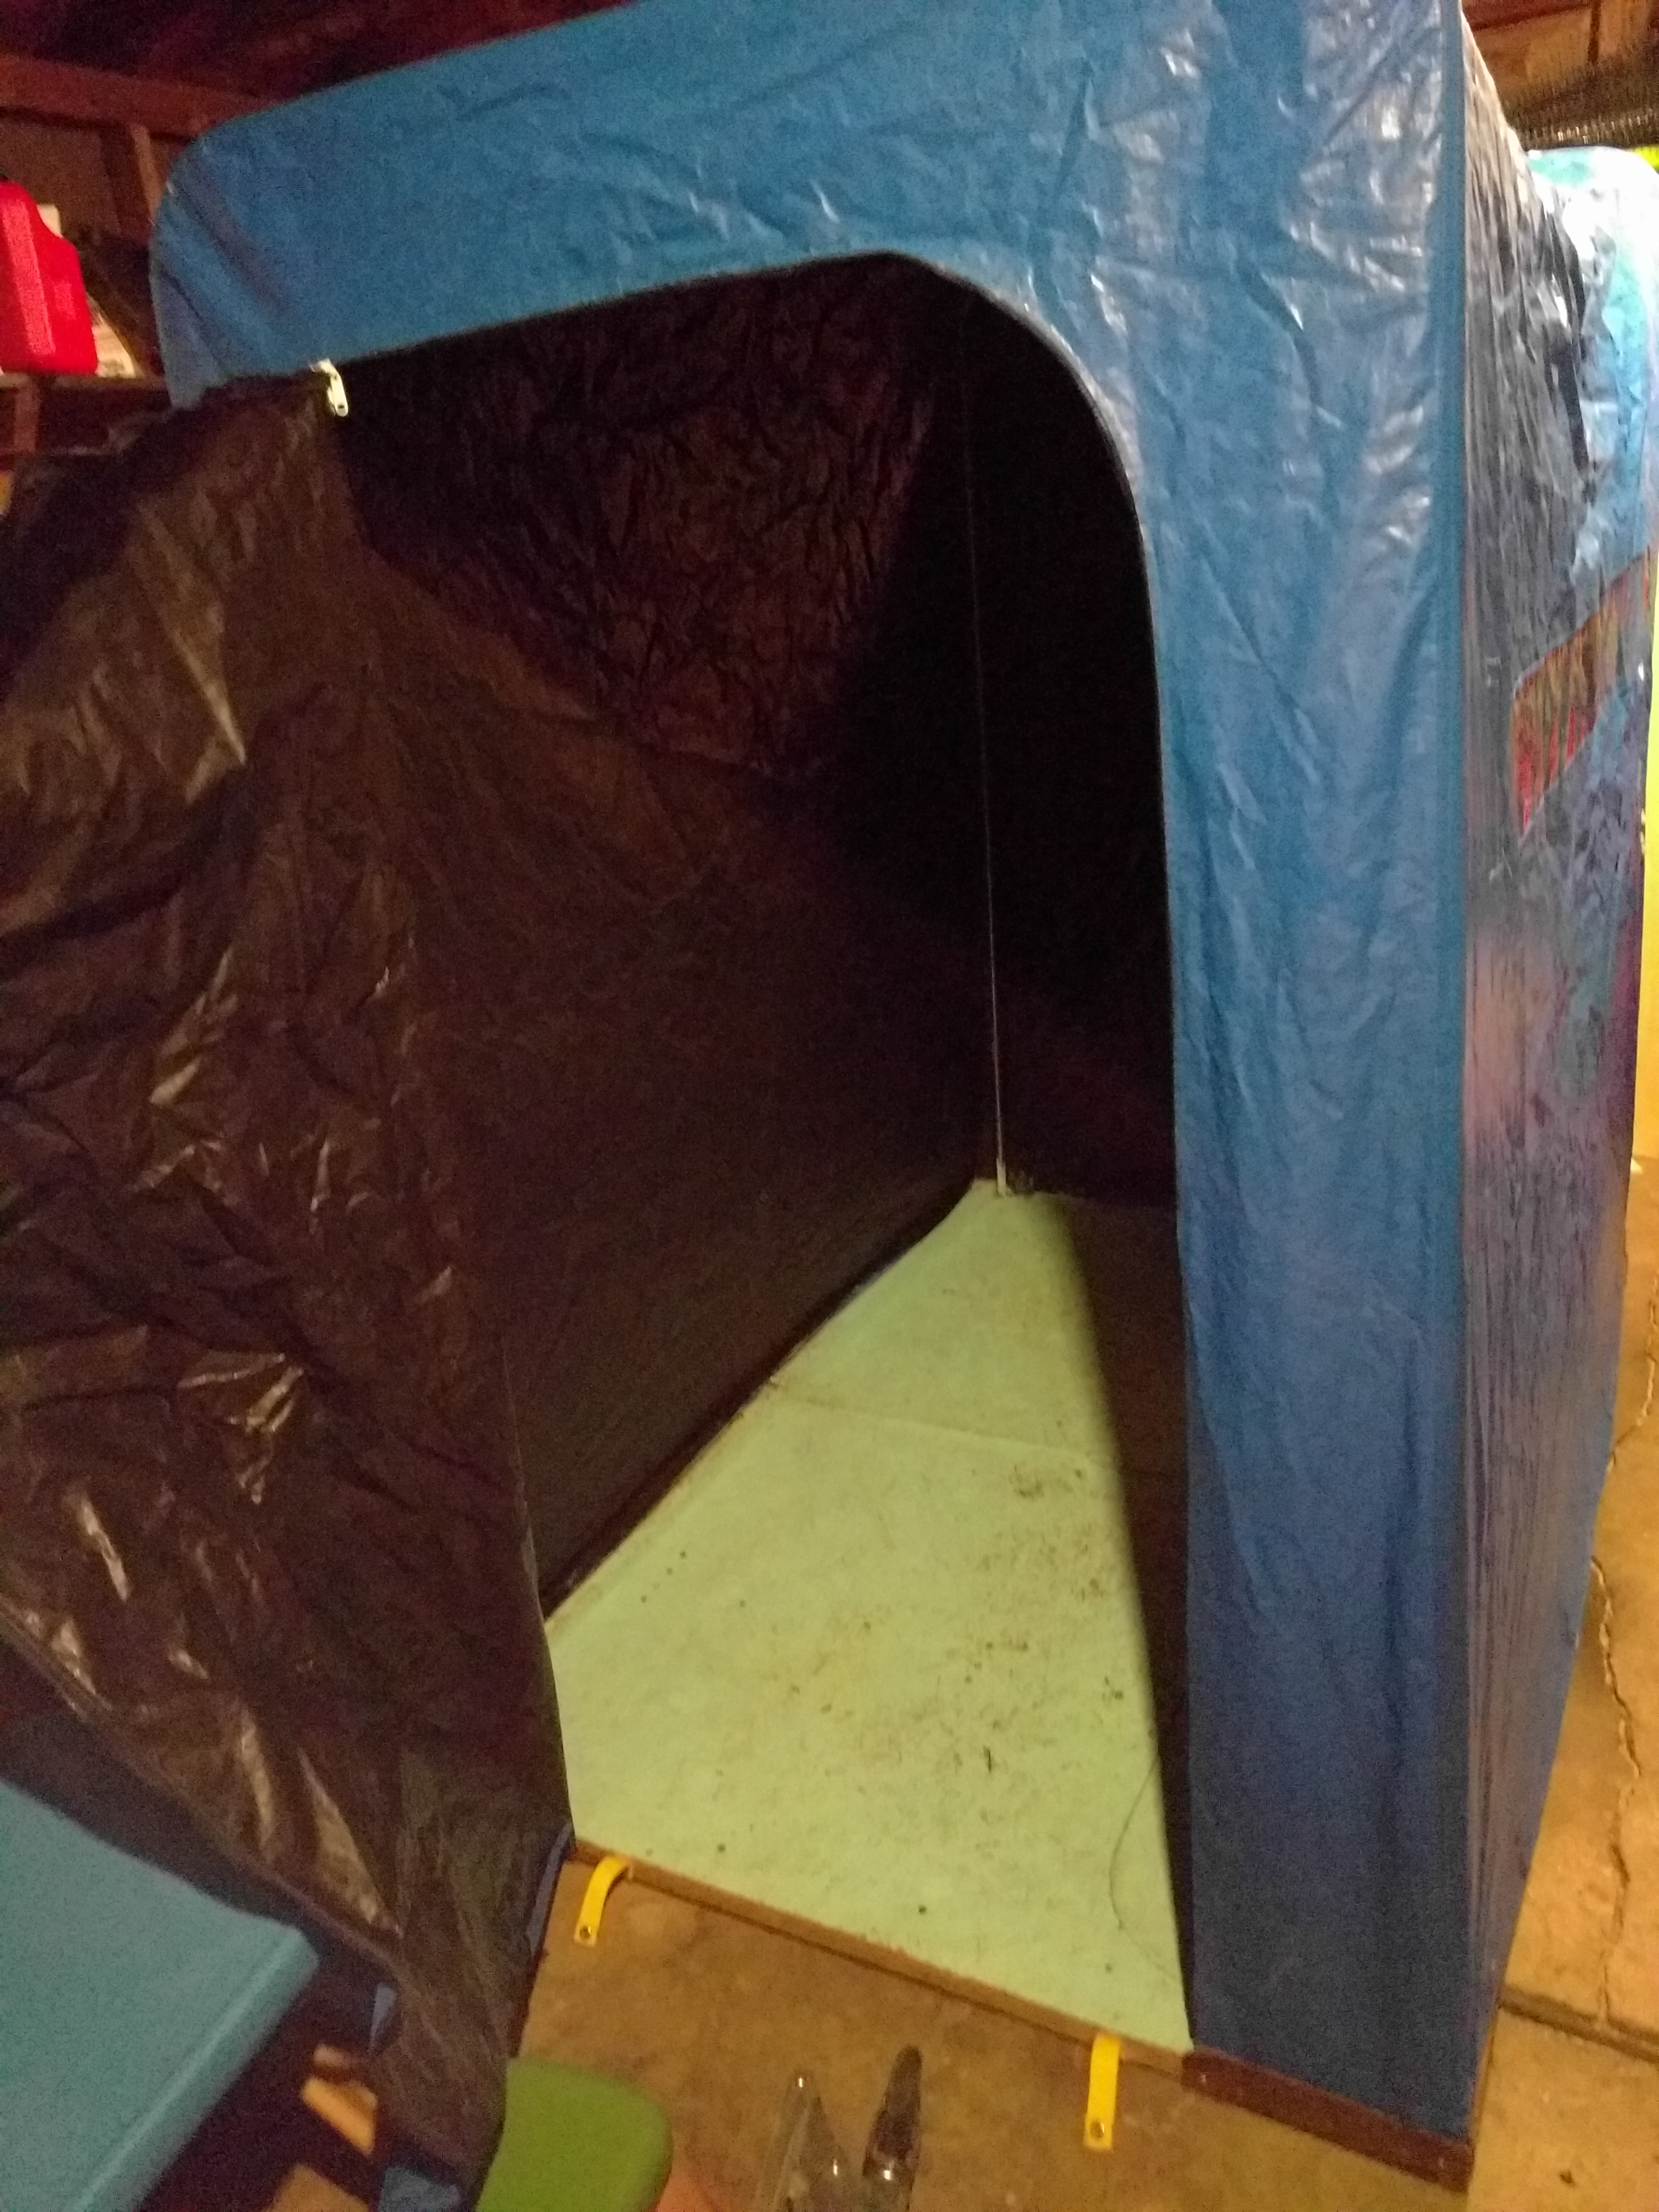 Album Possible Grow Tent Setup & Upcycled Ice Shanty Grow Tent Build Setup Questions | Grasscity Forums